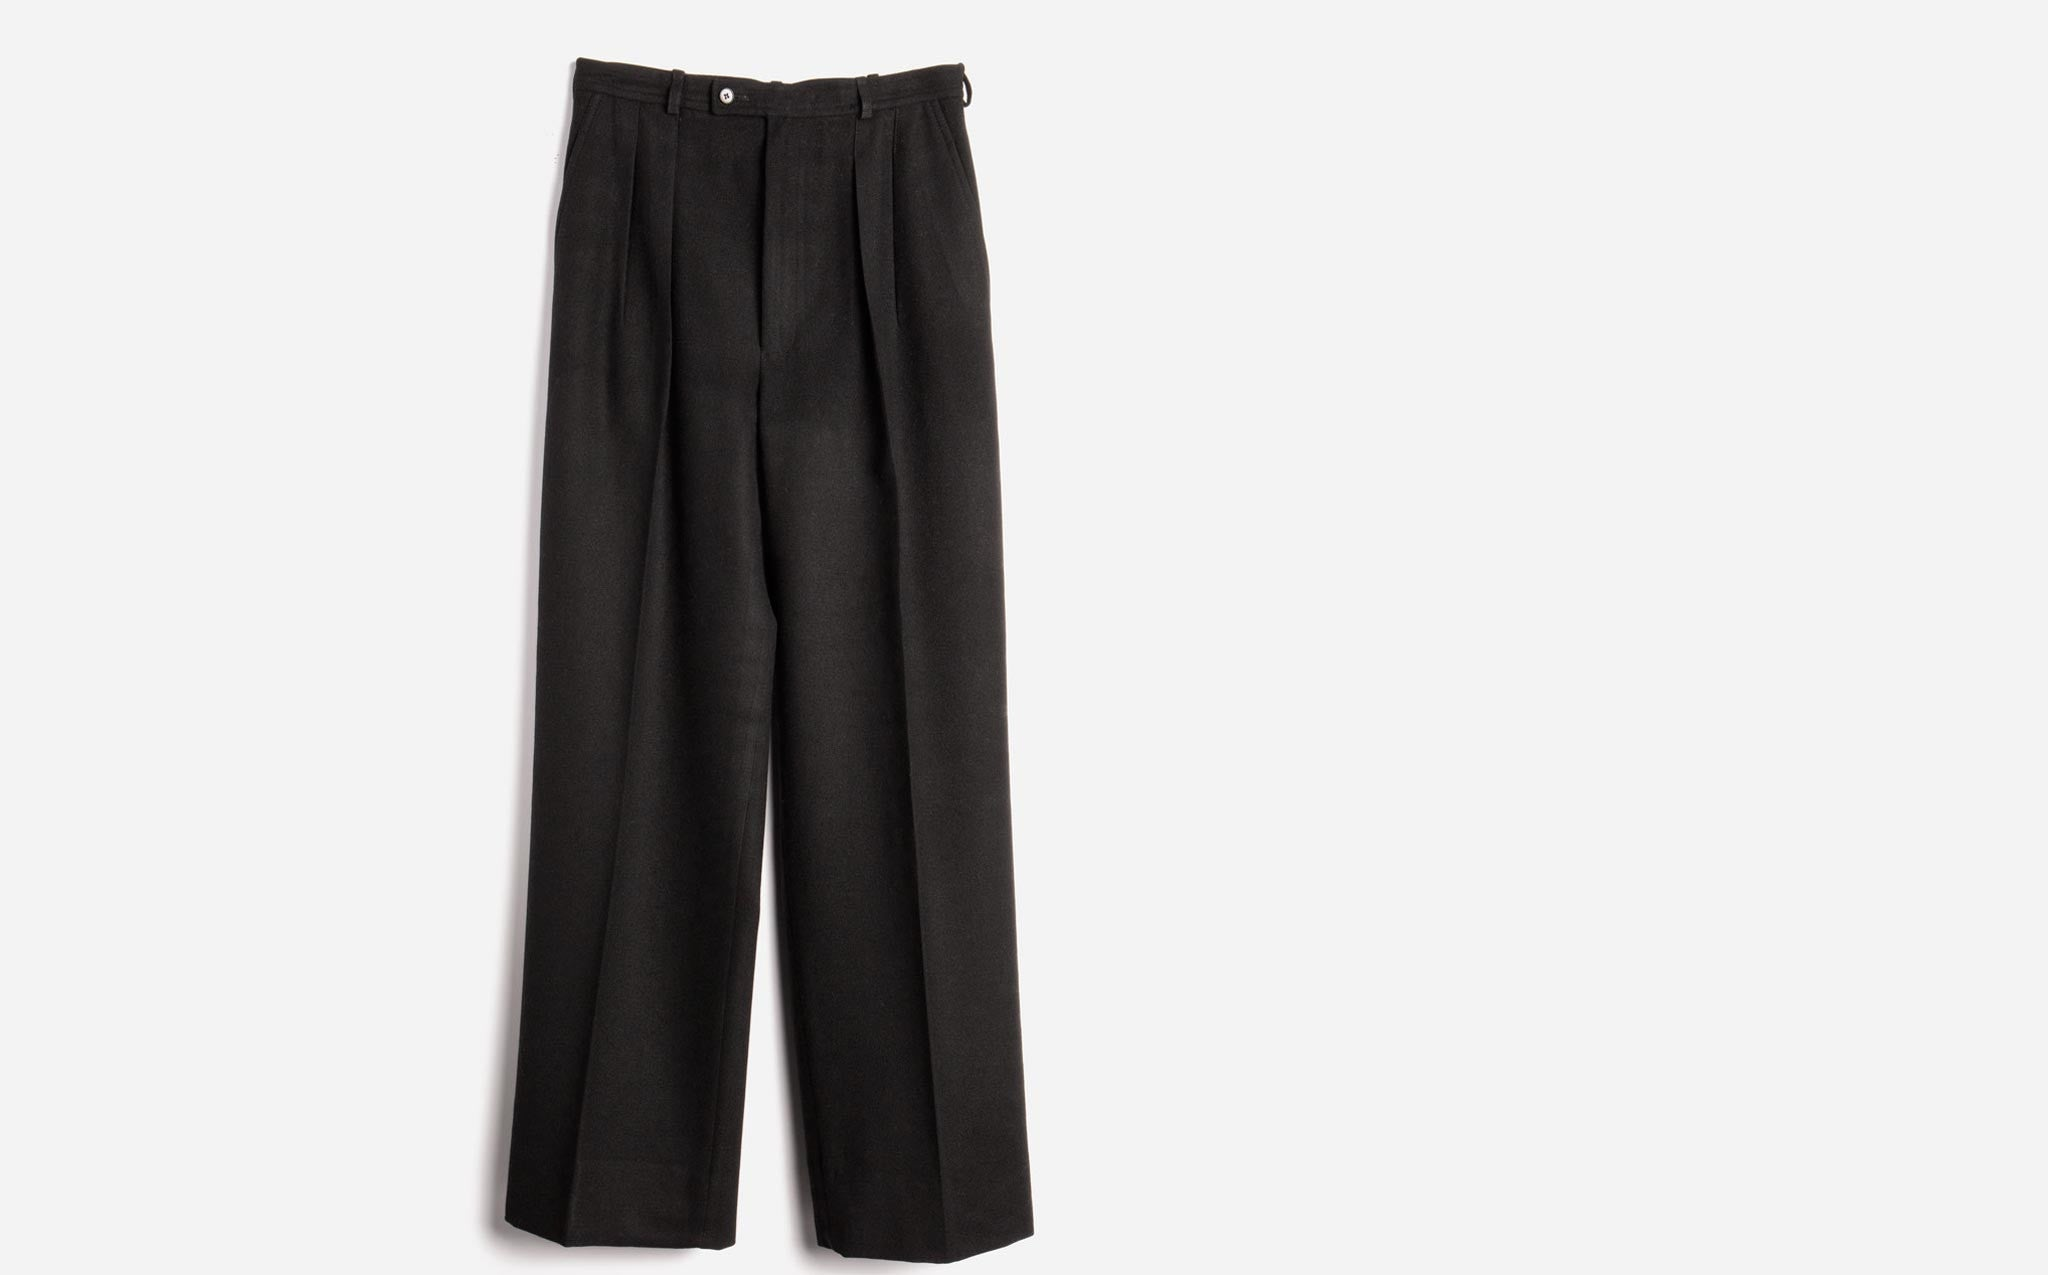 Yves Saint Laurent Rive Gauche Wool Trousers